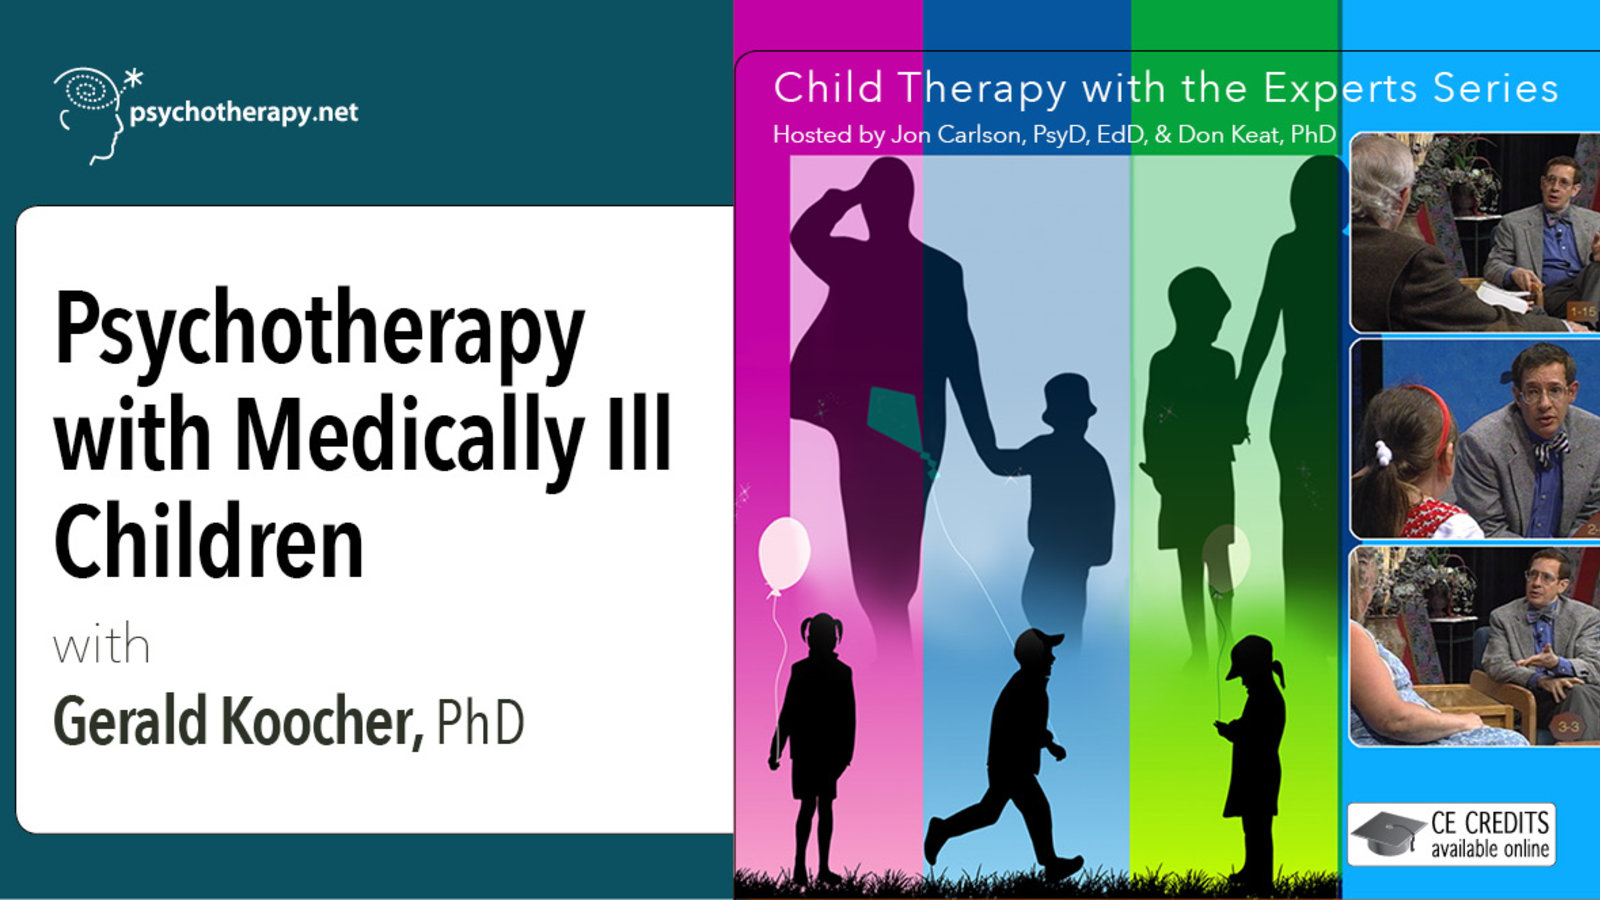 Psychotherapy with Medically Ill Children - With Gerald Koocher